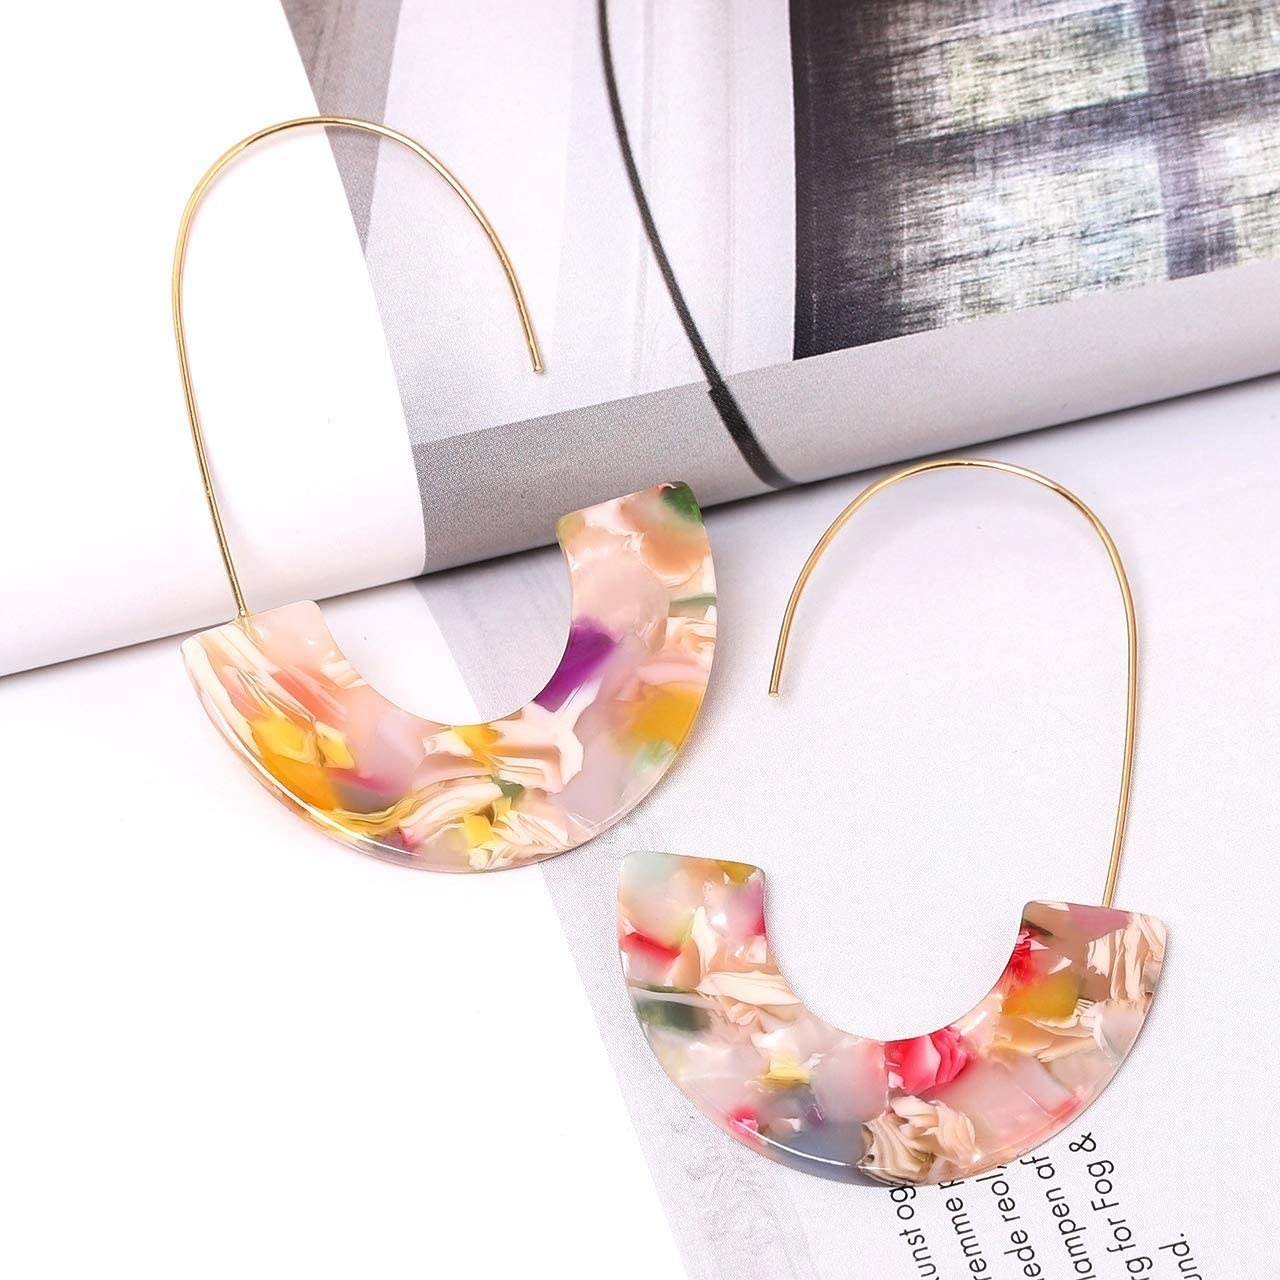 The earrings, with gold wire hooks and half-moon multicolor resin hanging from them